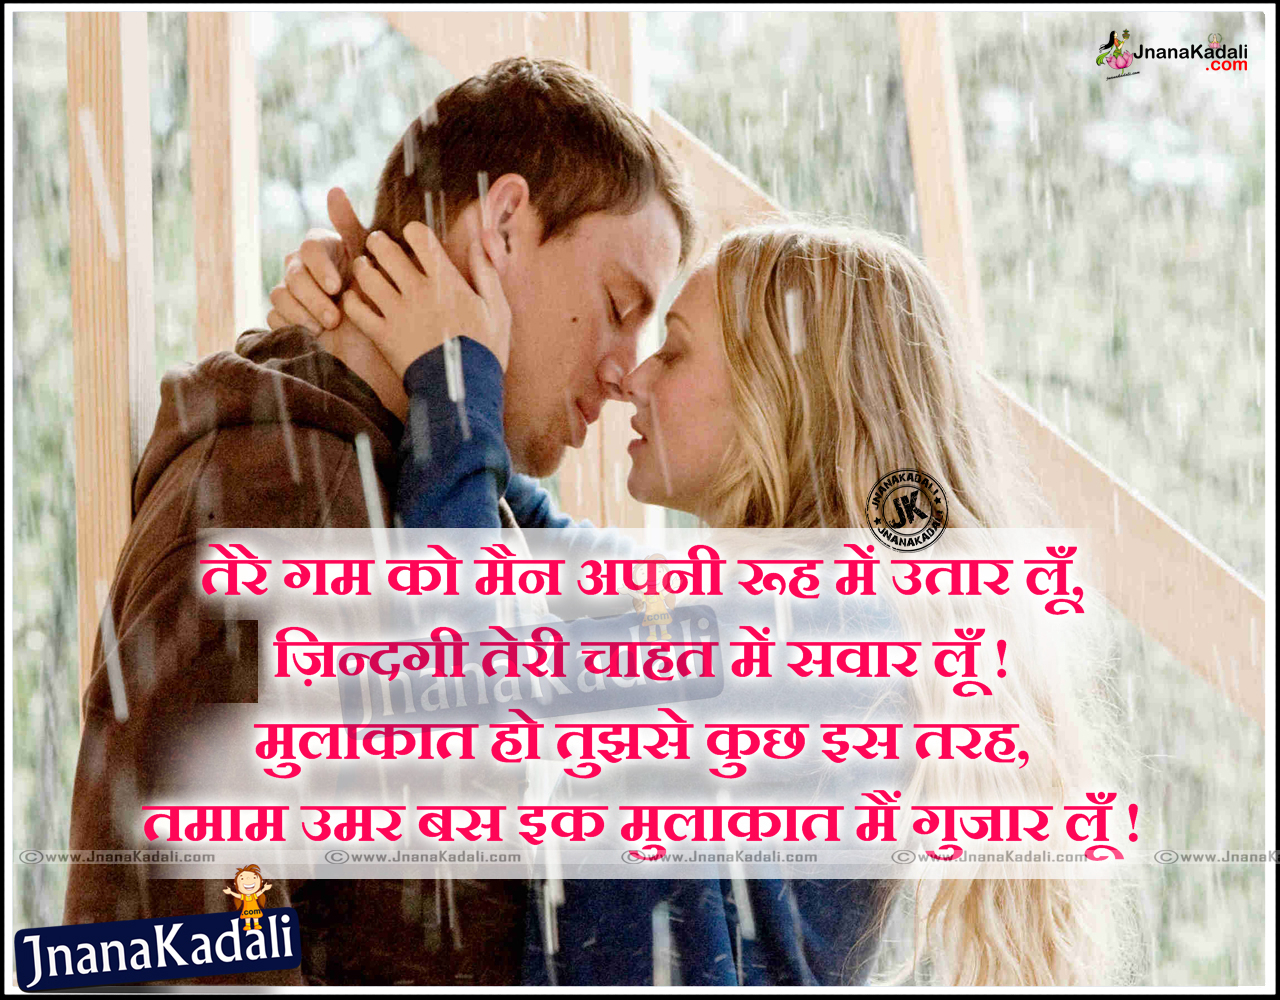 Love Couple Quote In Hindi Love Couple With Quote Pic In Hindi Romantic Couple Images With